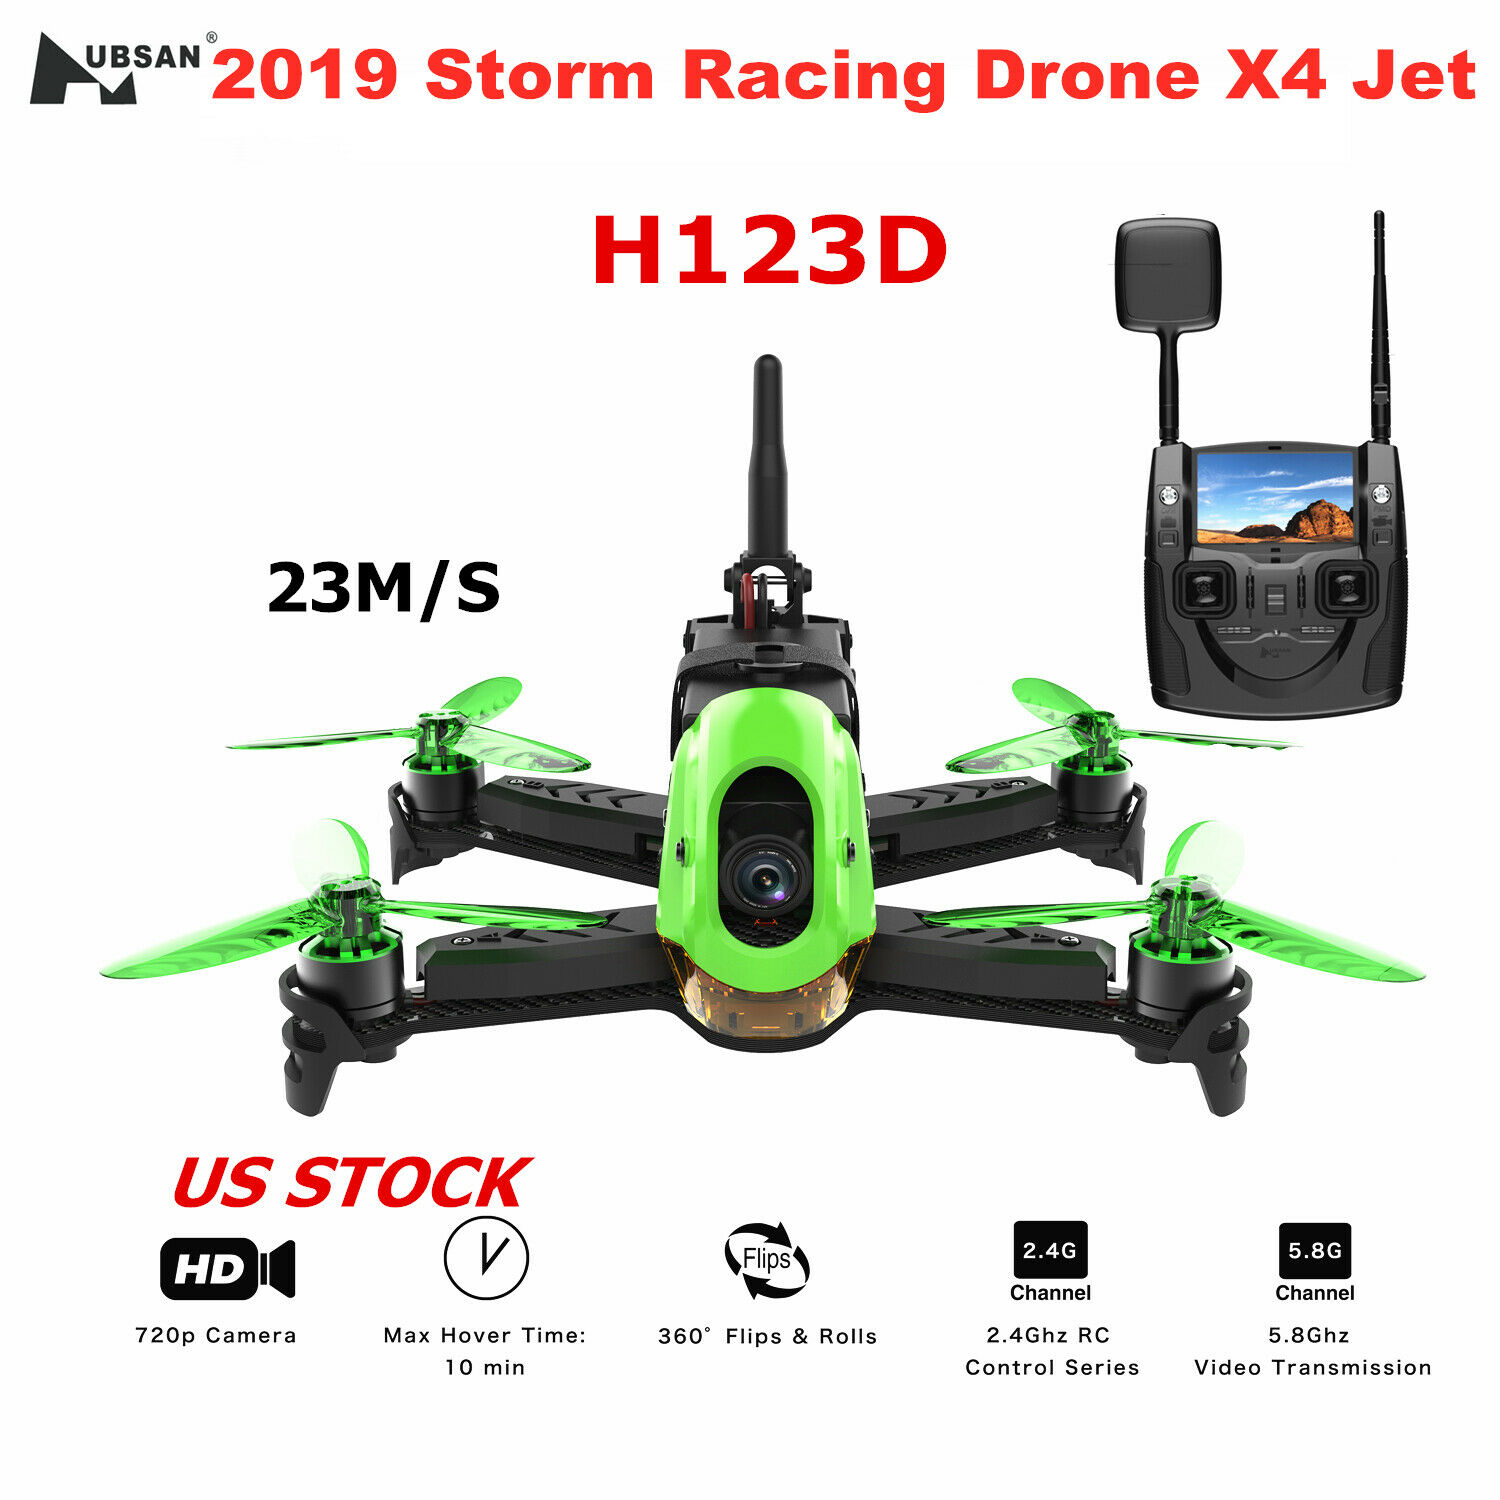 2019 Hubsan H123D X4 Jet Storm Racing Drone Brushless FPV 720P Quadcopter RTF US